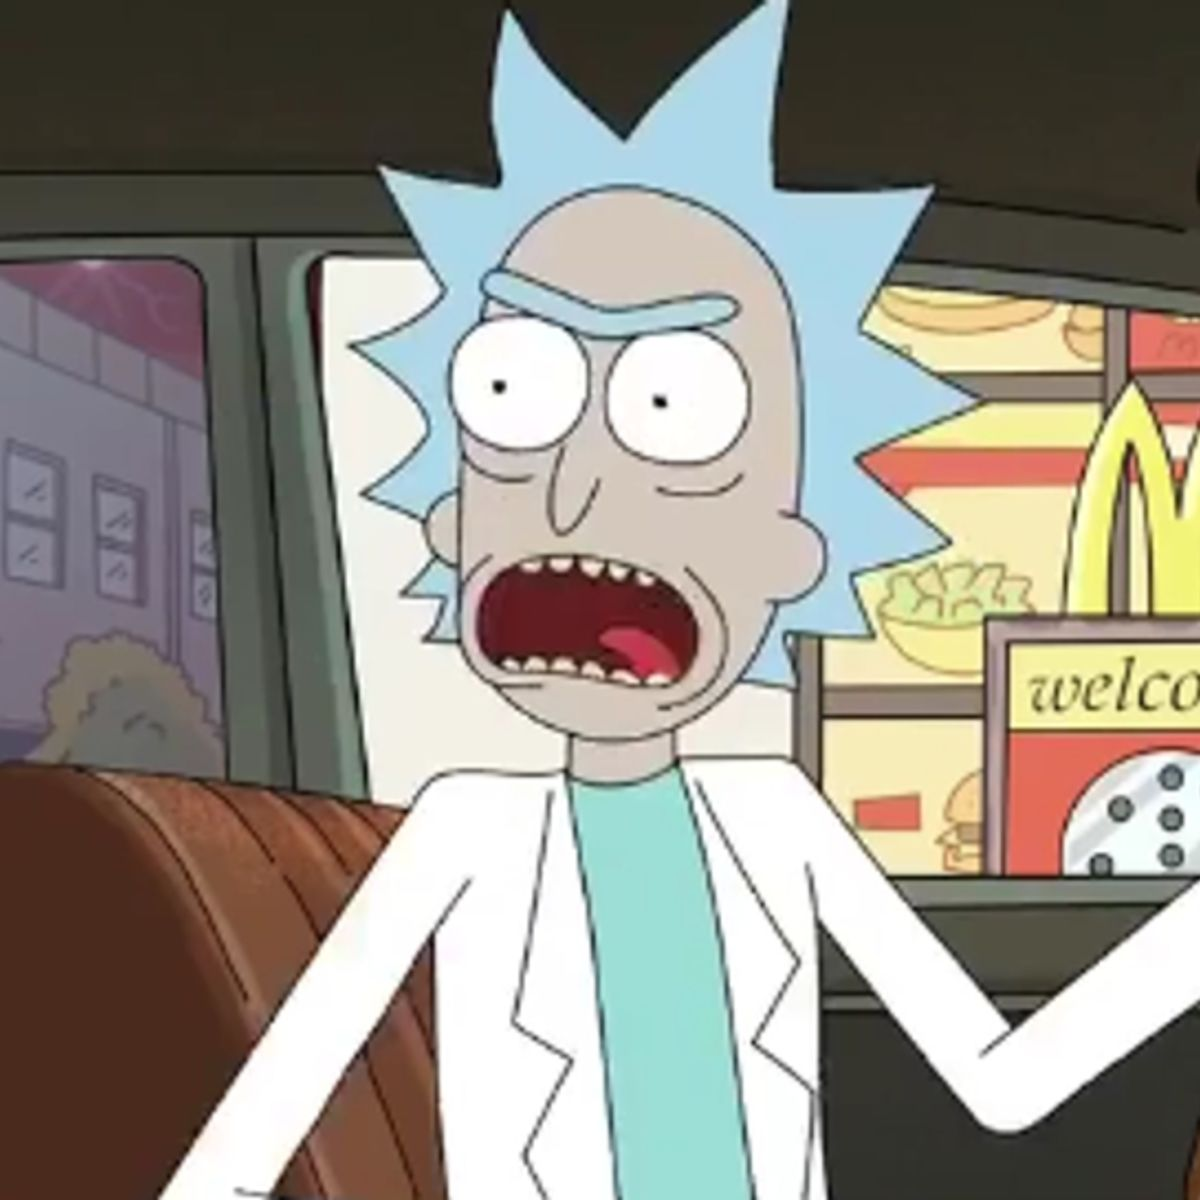 rick-and-morty-szechuan-featured-04042017.jpg